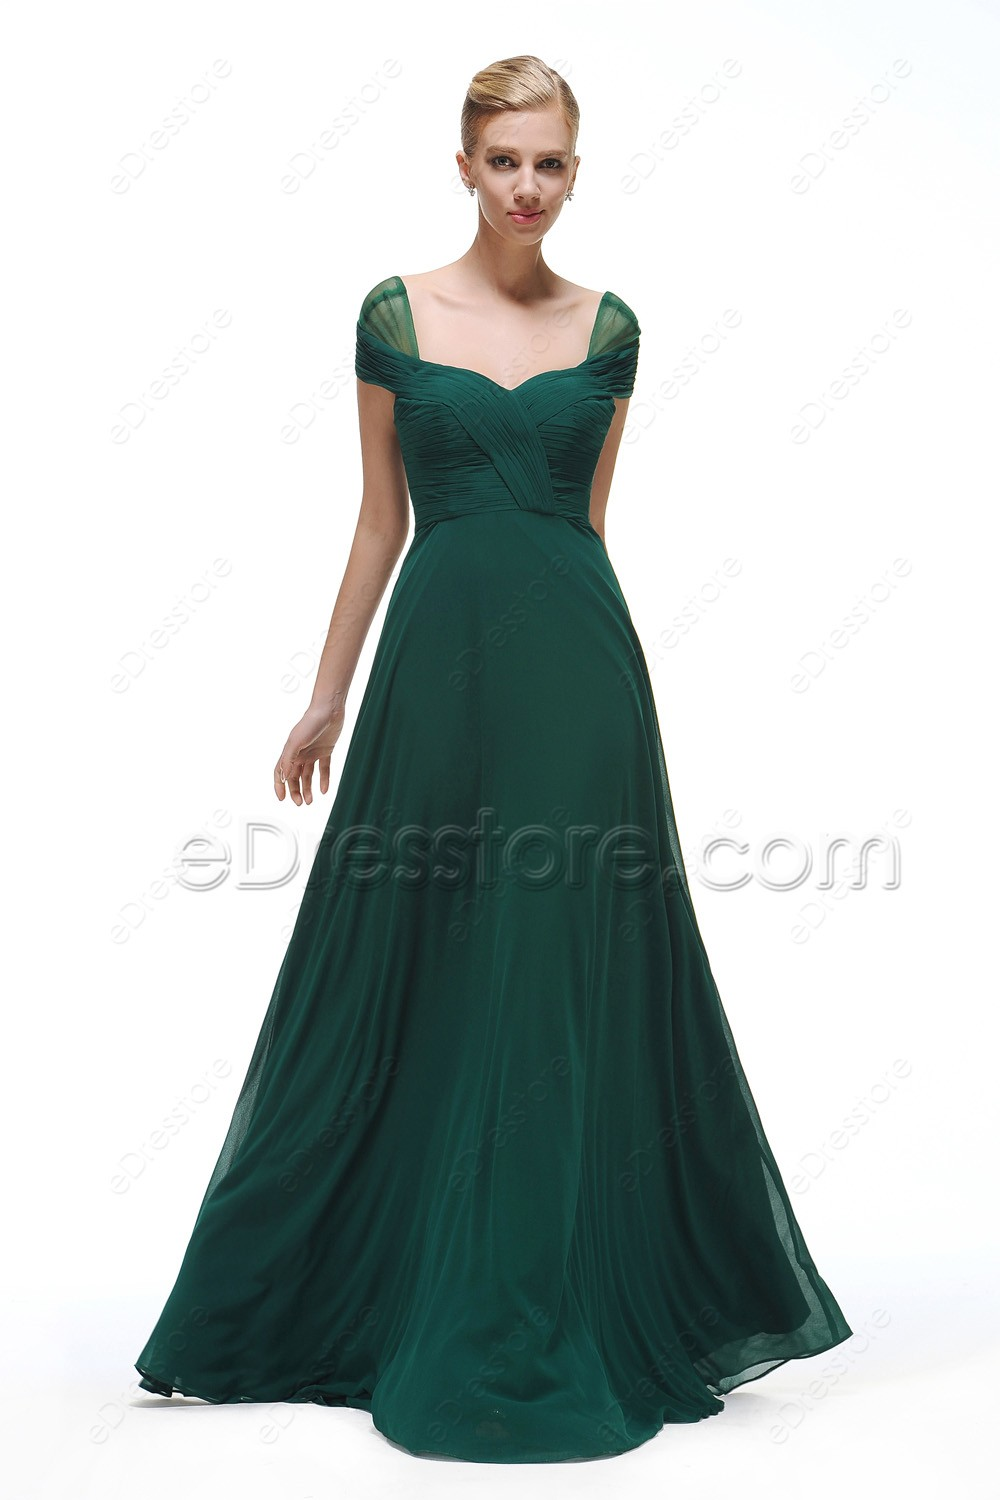 Cap sleeves forest green bridesmaid dresses long ombrellifo Images